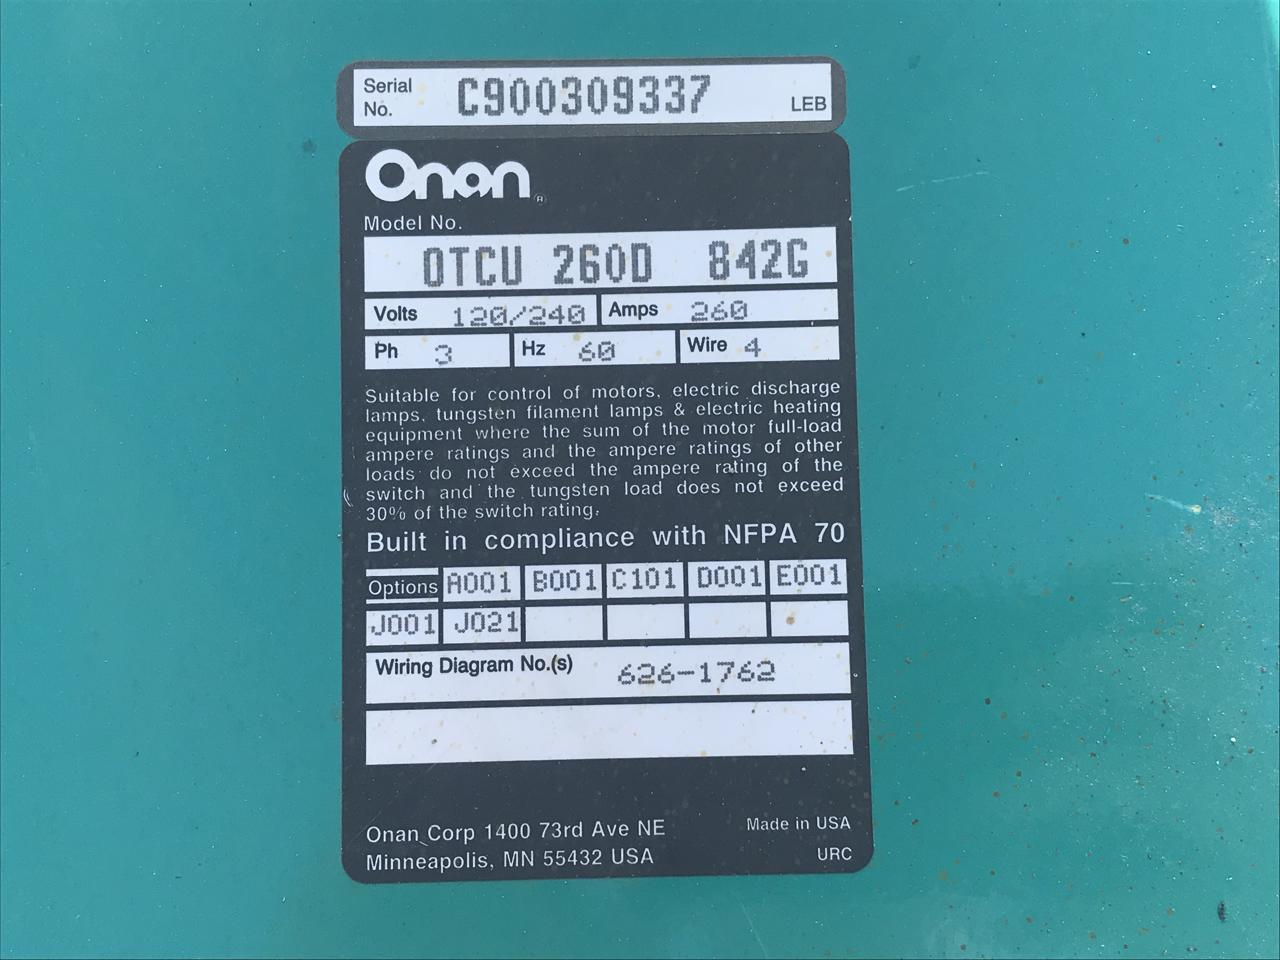 Onan Transfer Switch Wiring Diagram 626 1762 Free For 260 Amps 1 3 Phase 4 Wire Ebay Rh Com Generator